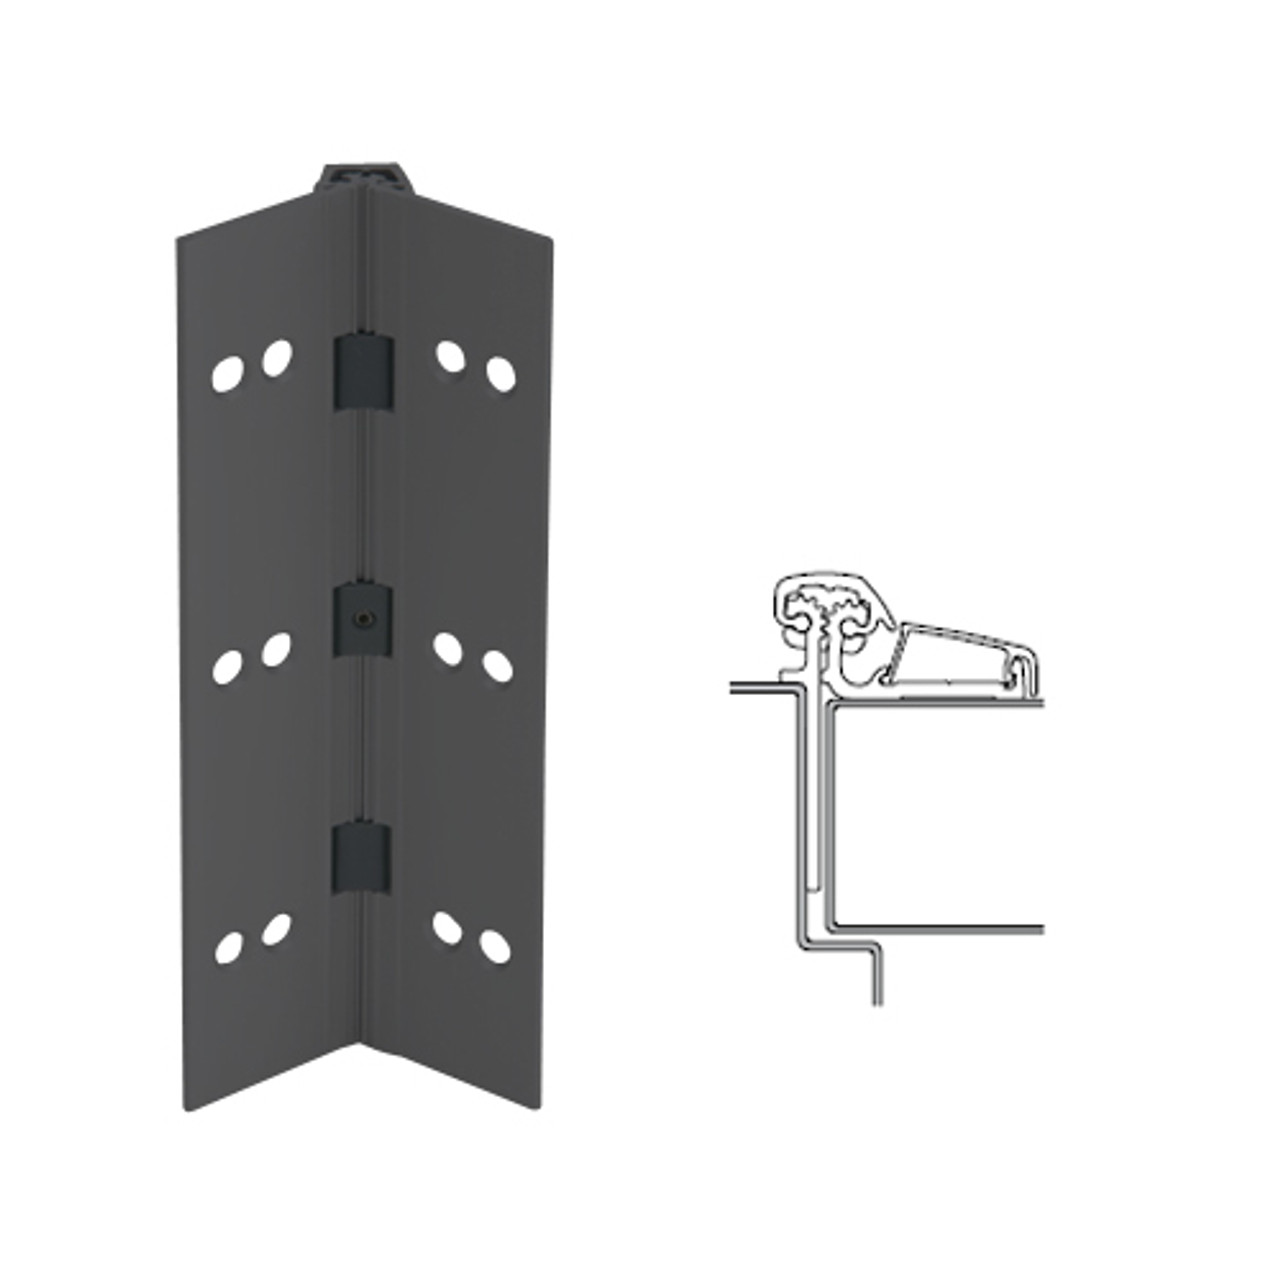 053XY-315AN-95-SECWDWD IVES Adjustable Half Surface Continuous Geared Hinges with Security Screws - Hex Pin Drive in Anodized Black